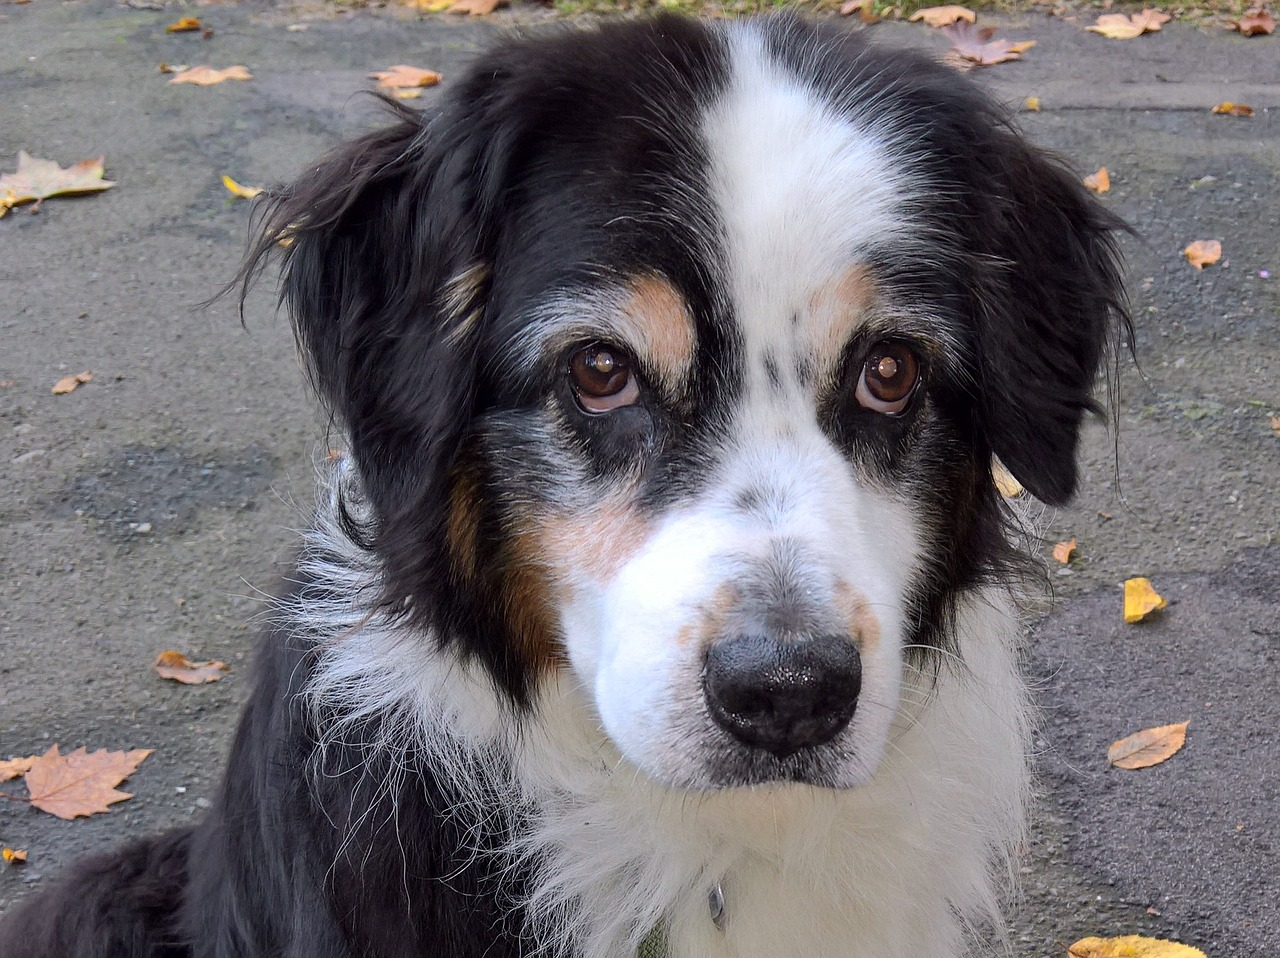 Is Incontinence A Reason to Euthanize A Dog?